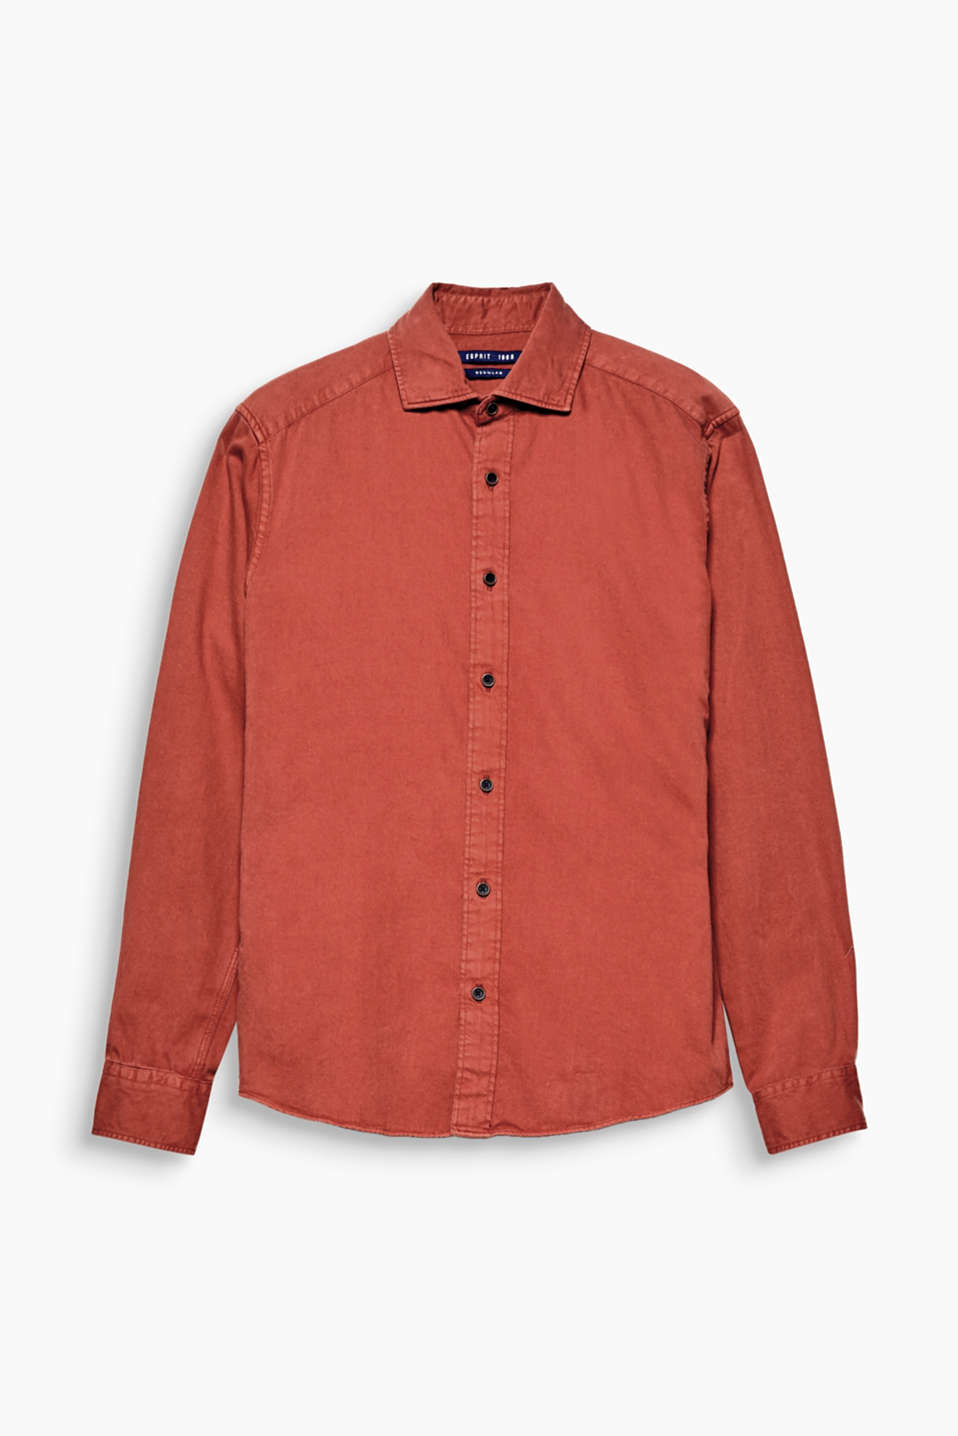 Garment dyed! The intense colour makes this pure cotton shirt a cool styling piece.